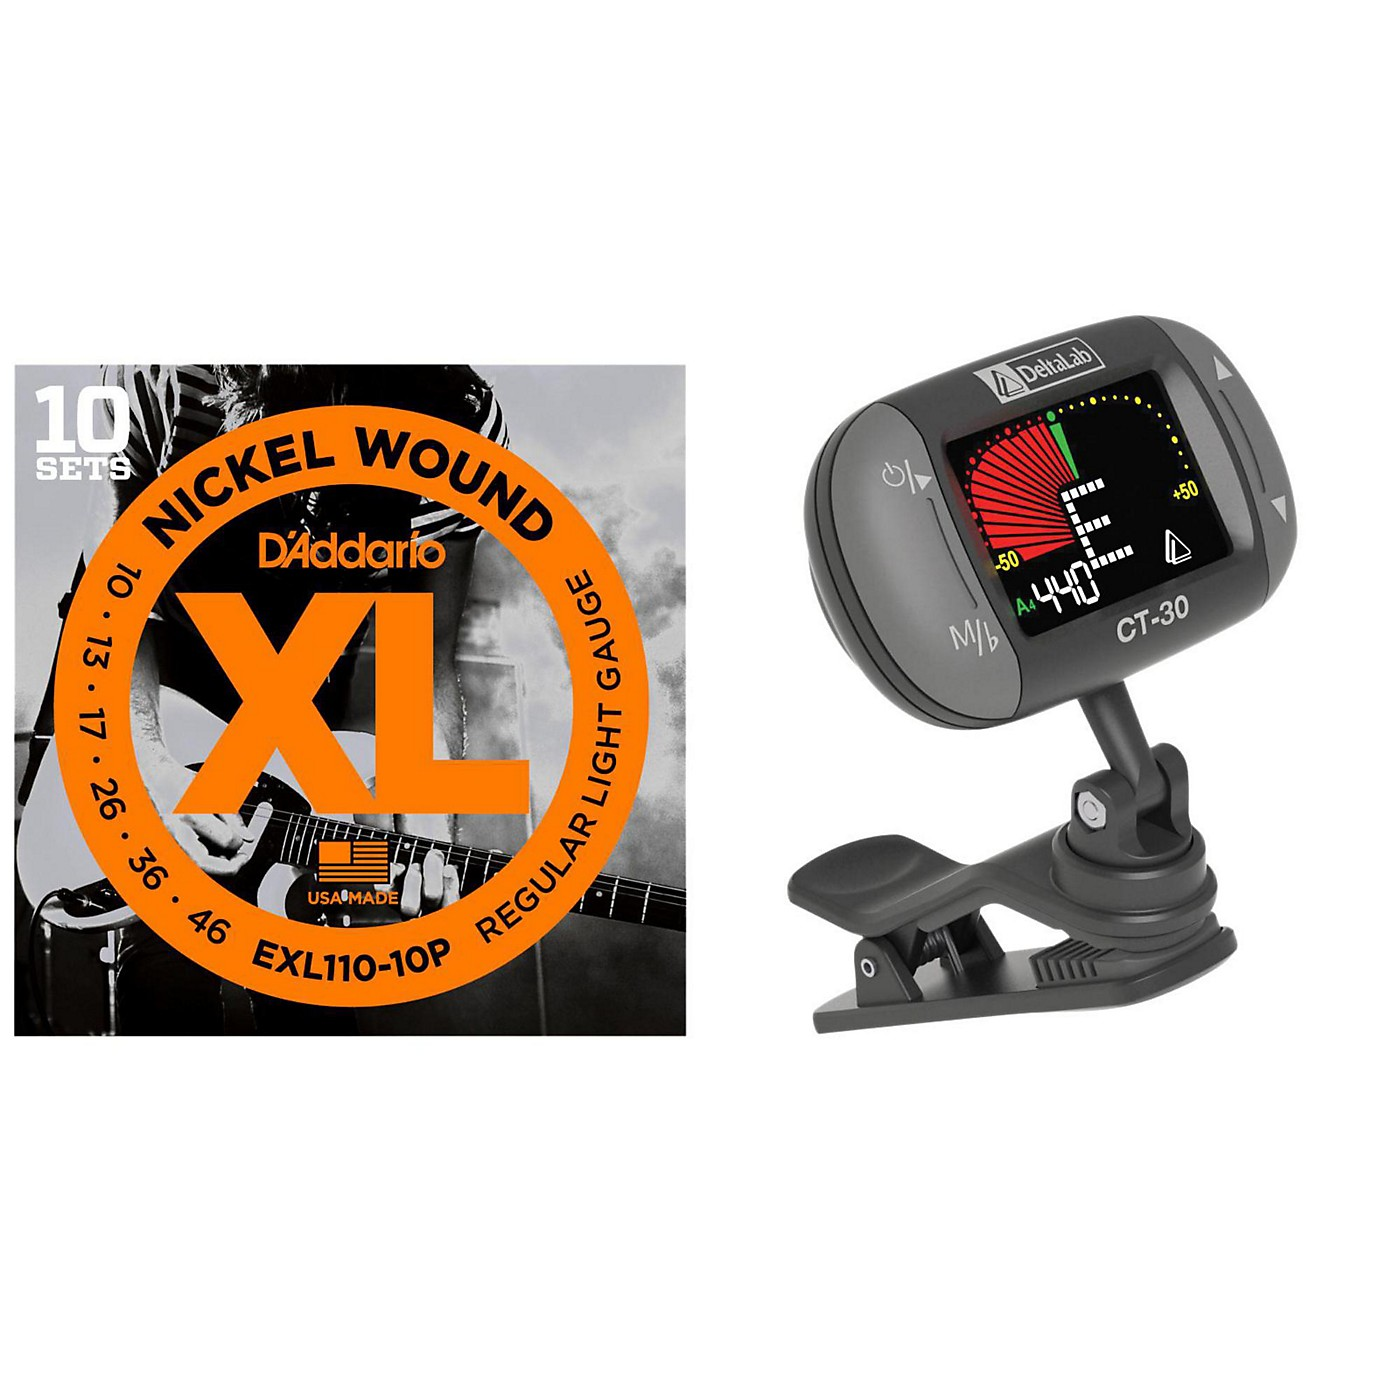 D'Addario EXL110-10P with a DeltaLab Clip-On Tuner thumbnail